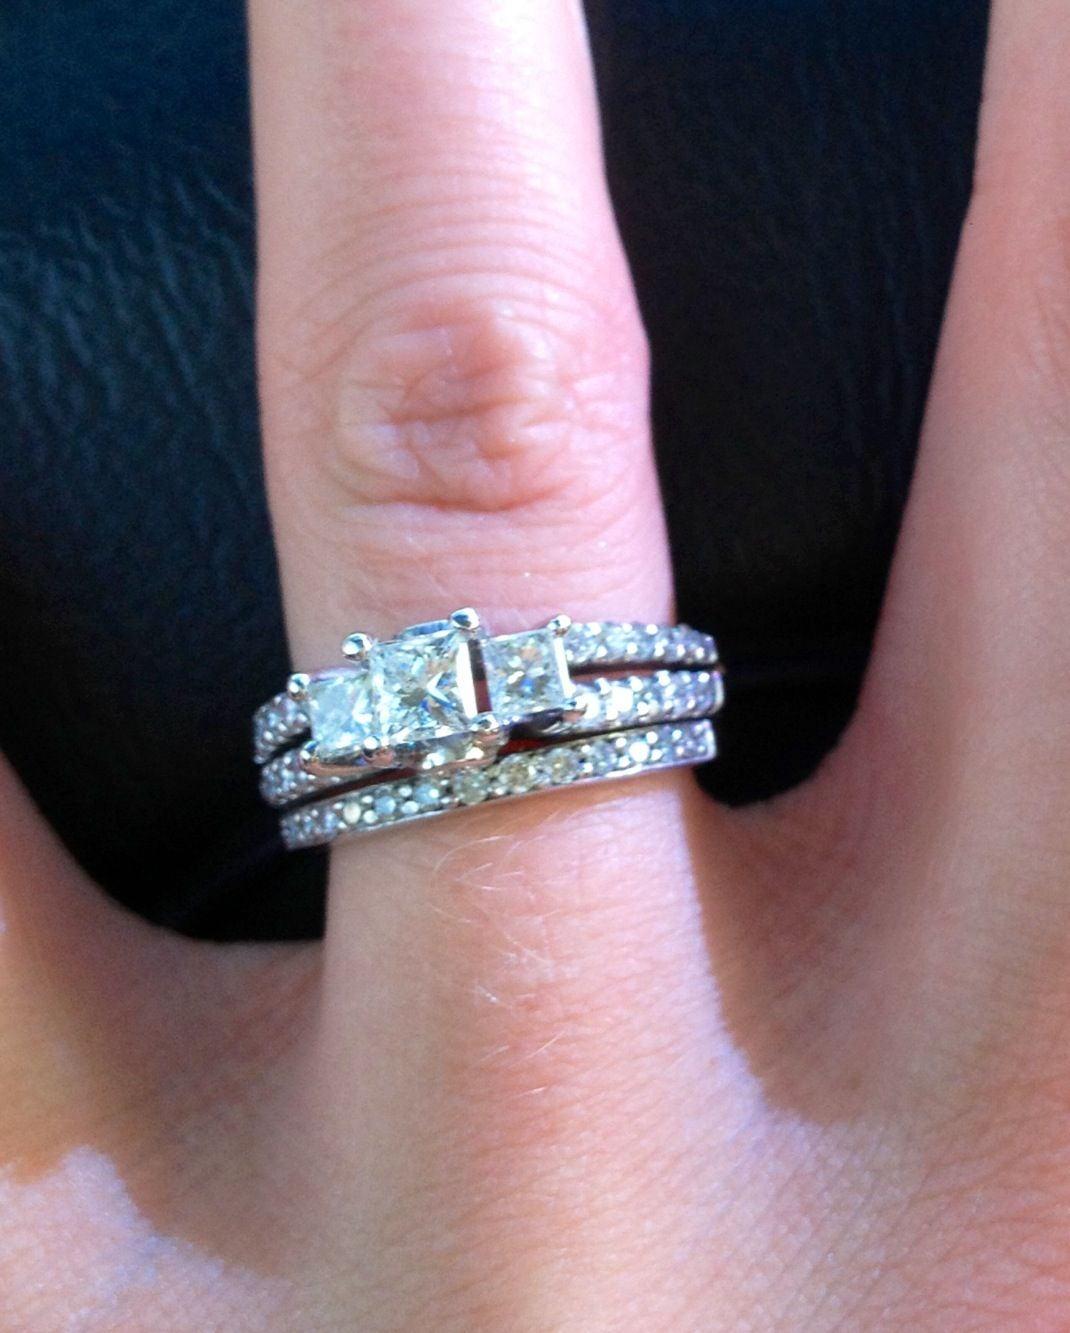 Pinterest Wedding Rings The Most Beautiful Wedding Rings How To Clean Wedding Ring Pinterest